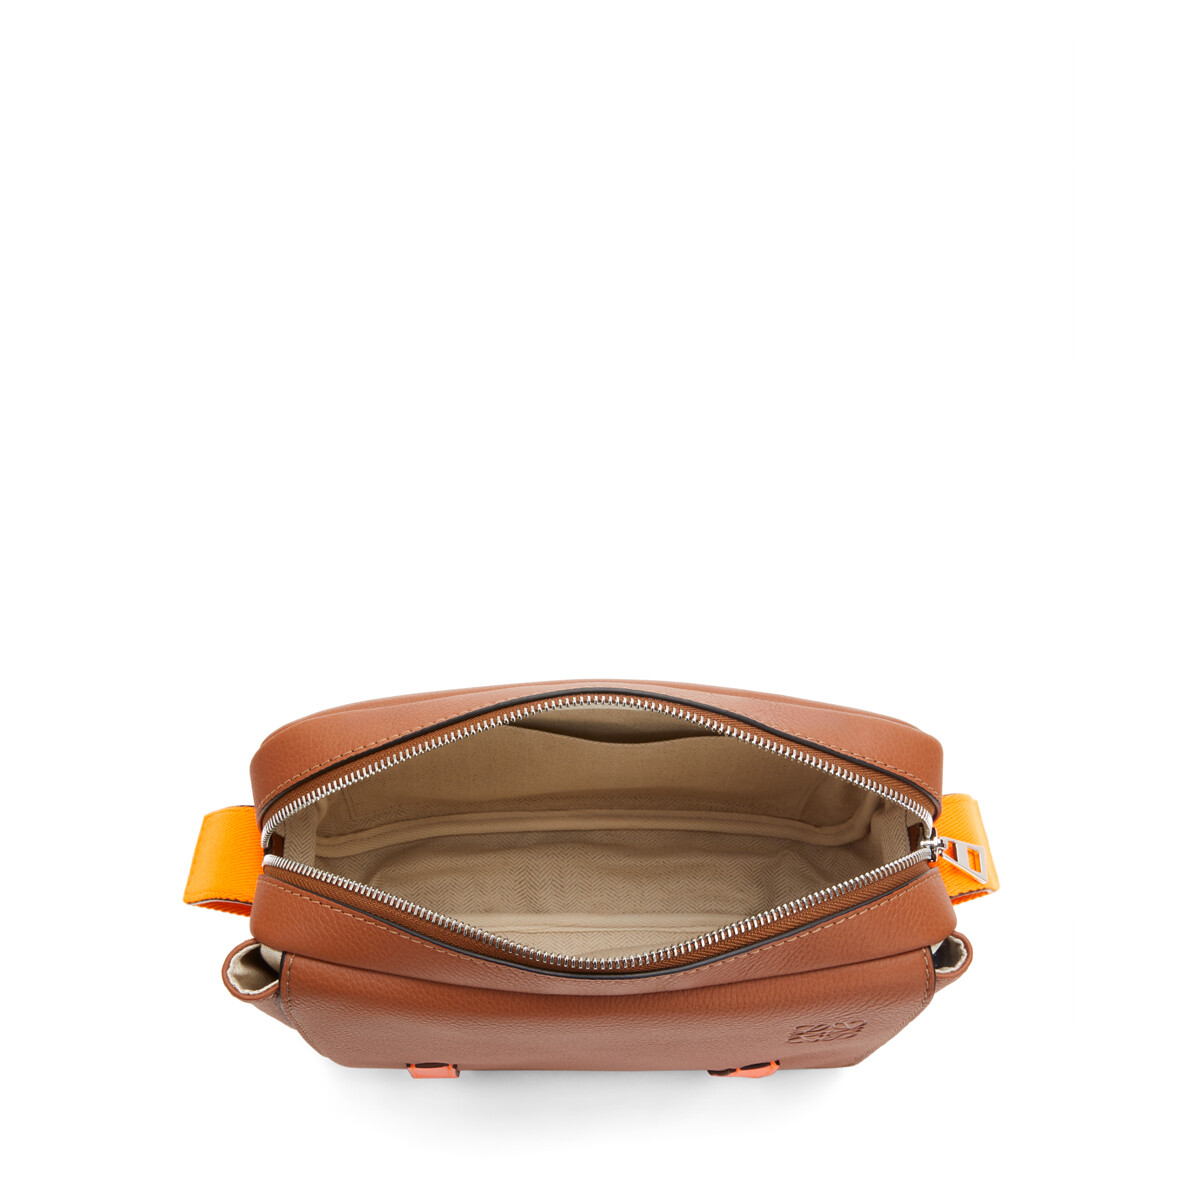 LOEWE Xs Military Messenger Bag In Soft Grained Calfskin Tan/Neon Orange front